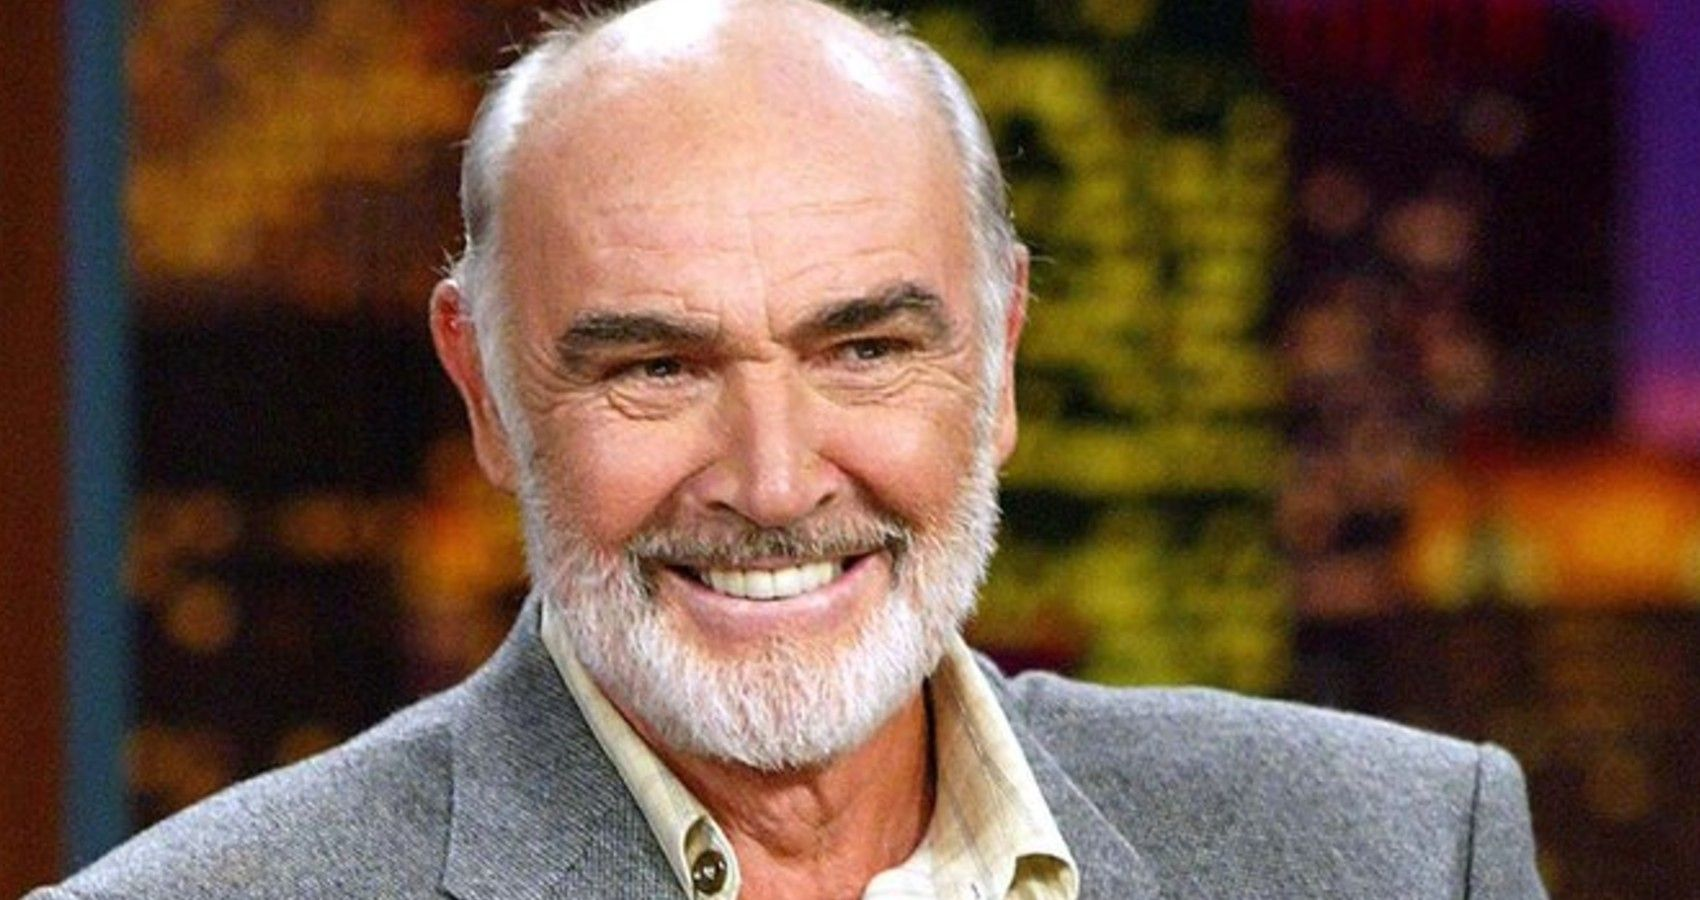 Sean Connery's Picture Show Him Happy With Son | Moms.com